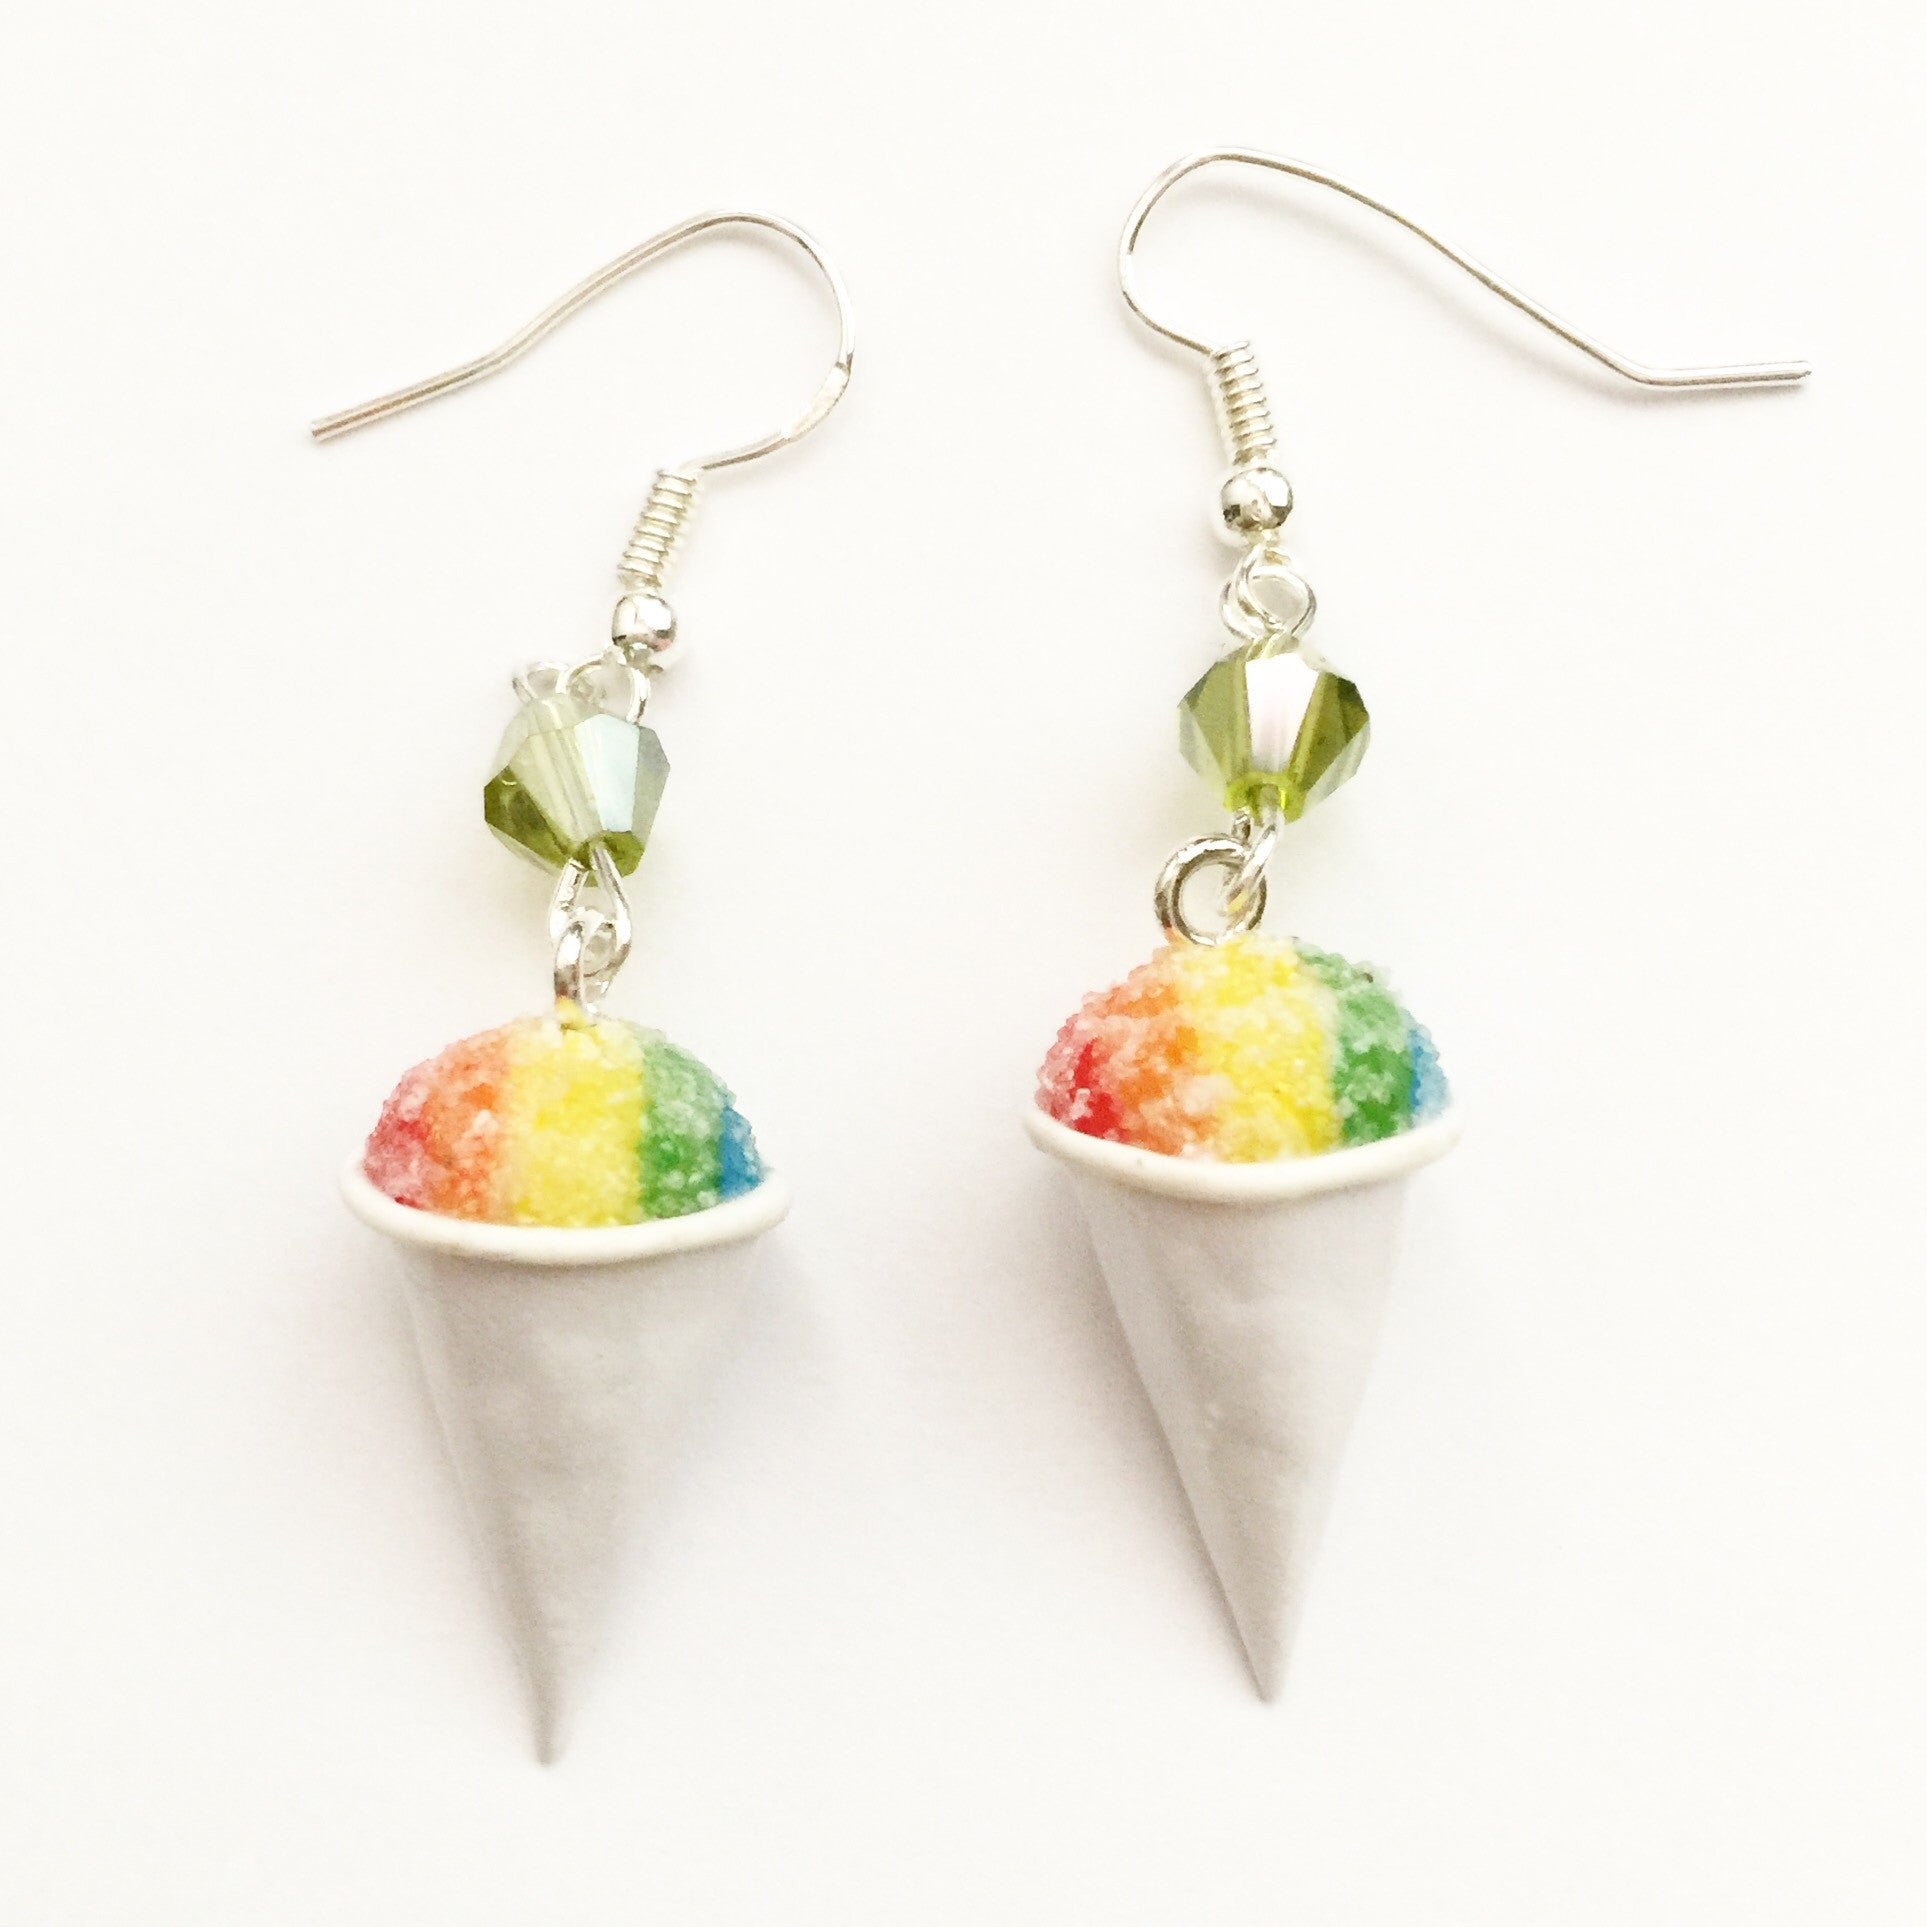 Snow Cone Dangle Earrings - Jillicious charms and accessories - 1